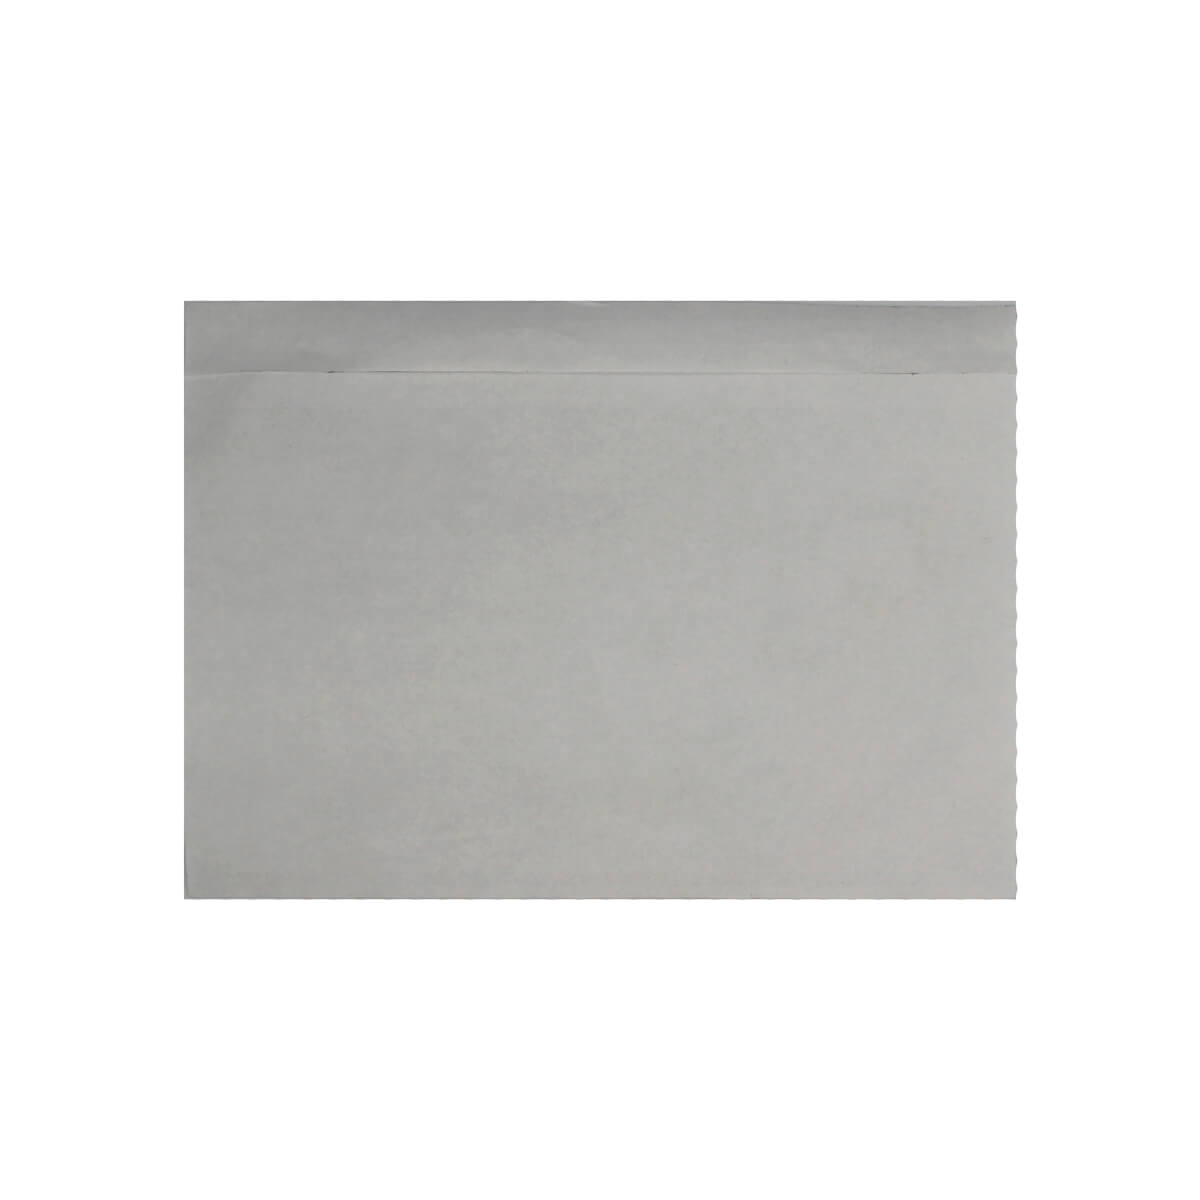 C5 CLEAR DOCUMENTS ENCLOSED WALLETS (229 x 162mm)